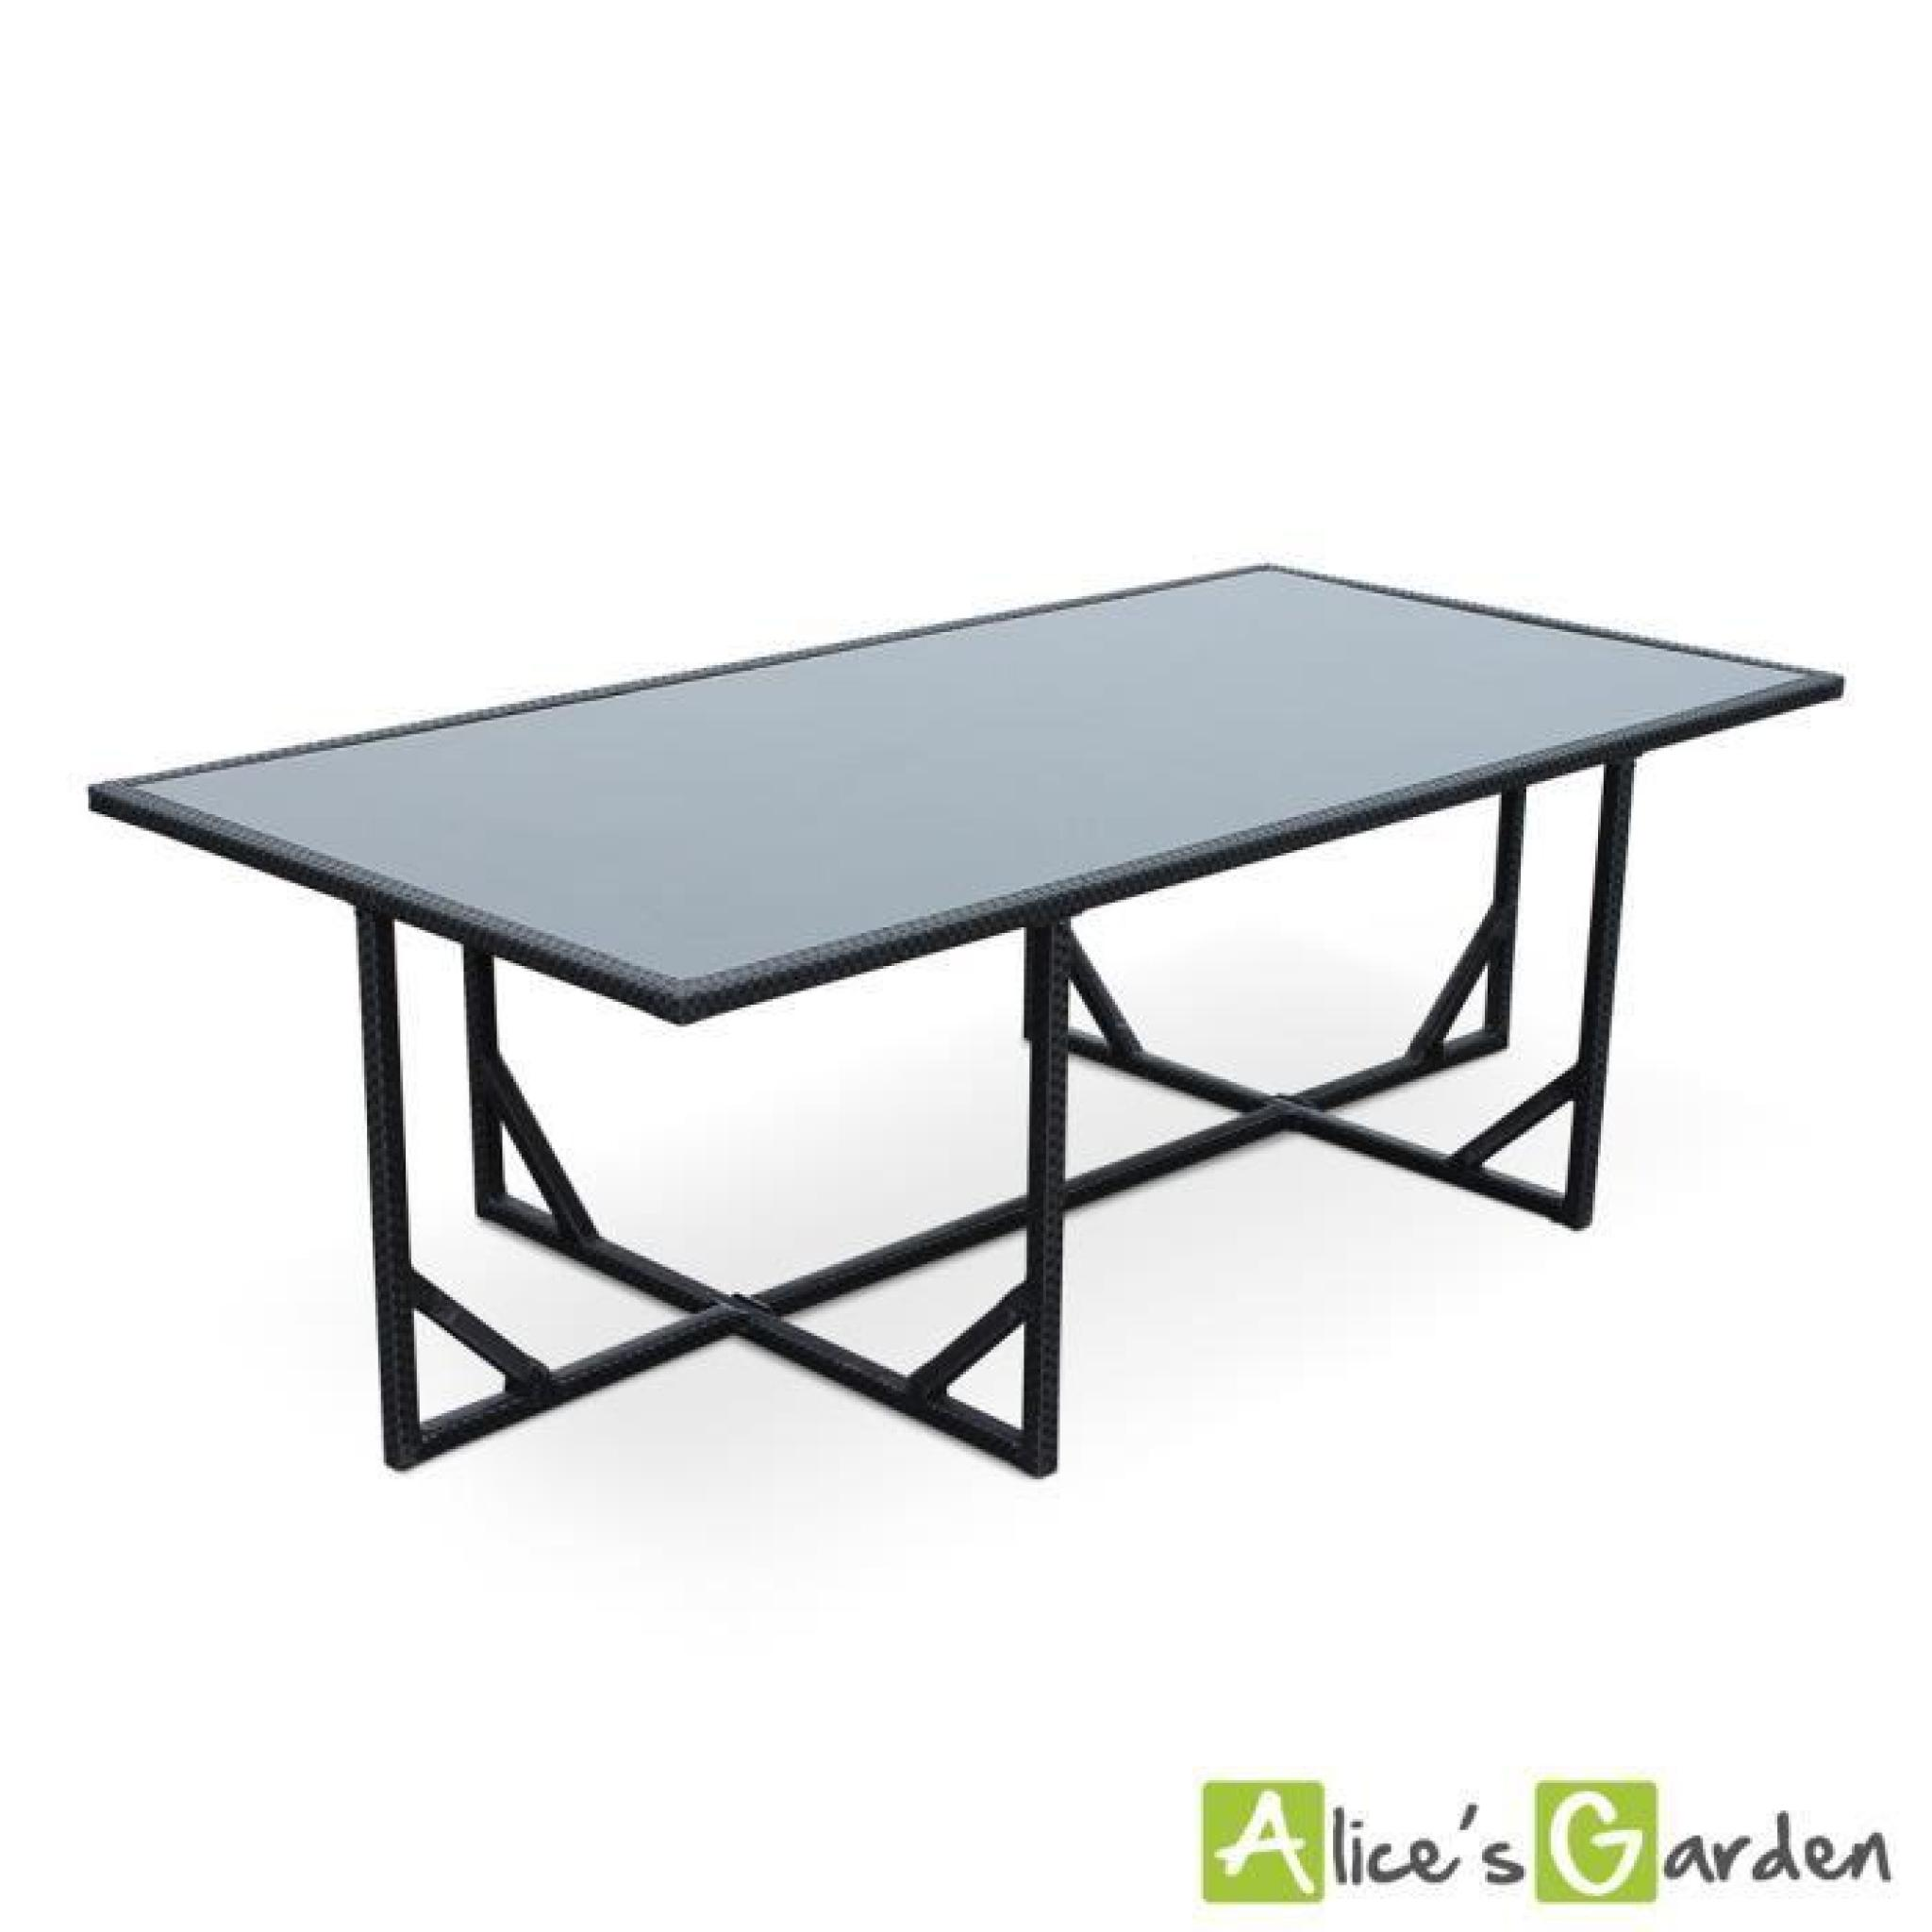 Salon de jardin vasto noir table en r sine tress e 8 12 places fauteuils e - Table resine tressee ...